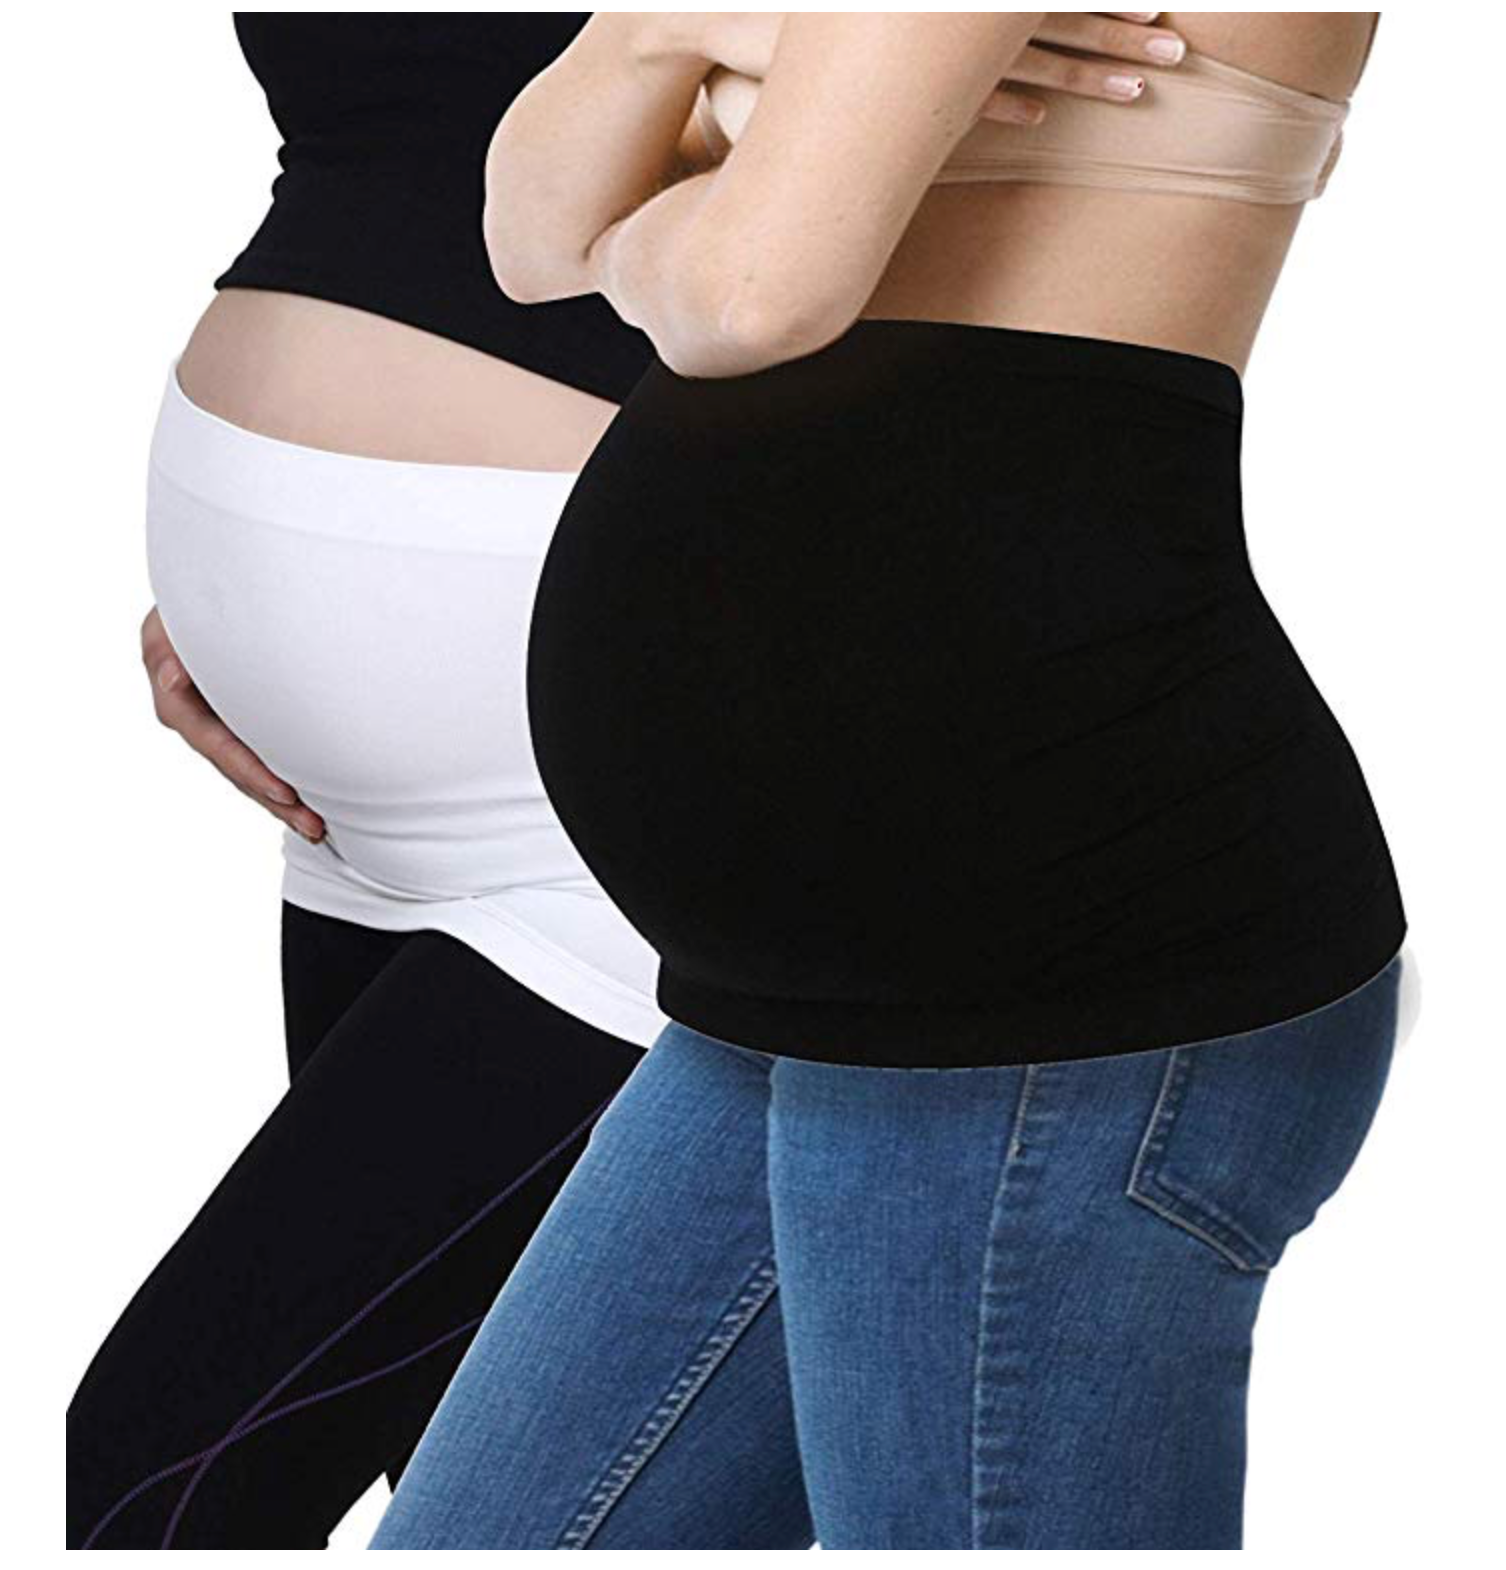 Maternity Belly Band Seamless Support Bands for Pregnancy 2 Pack White/Black L - BrandsForLess.CO